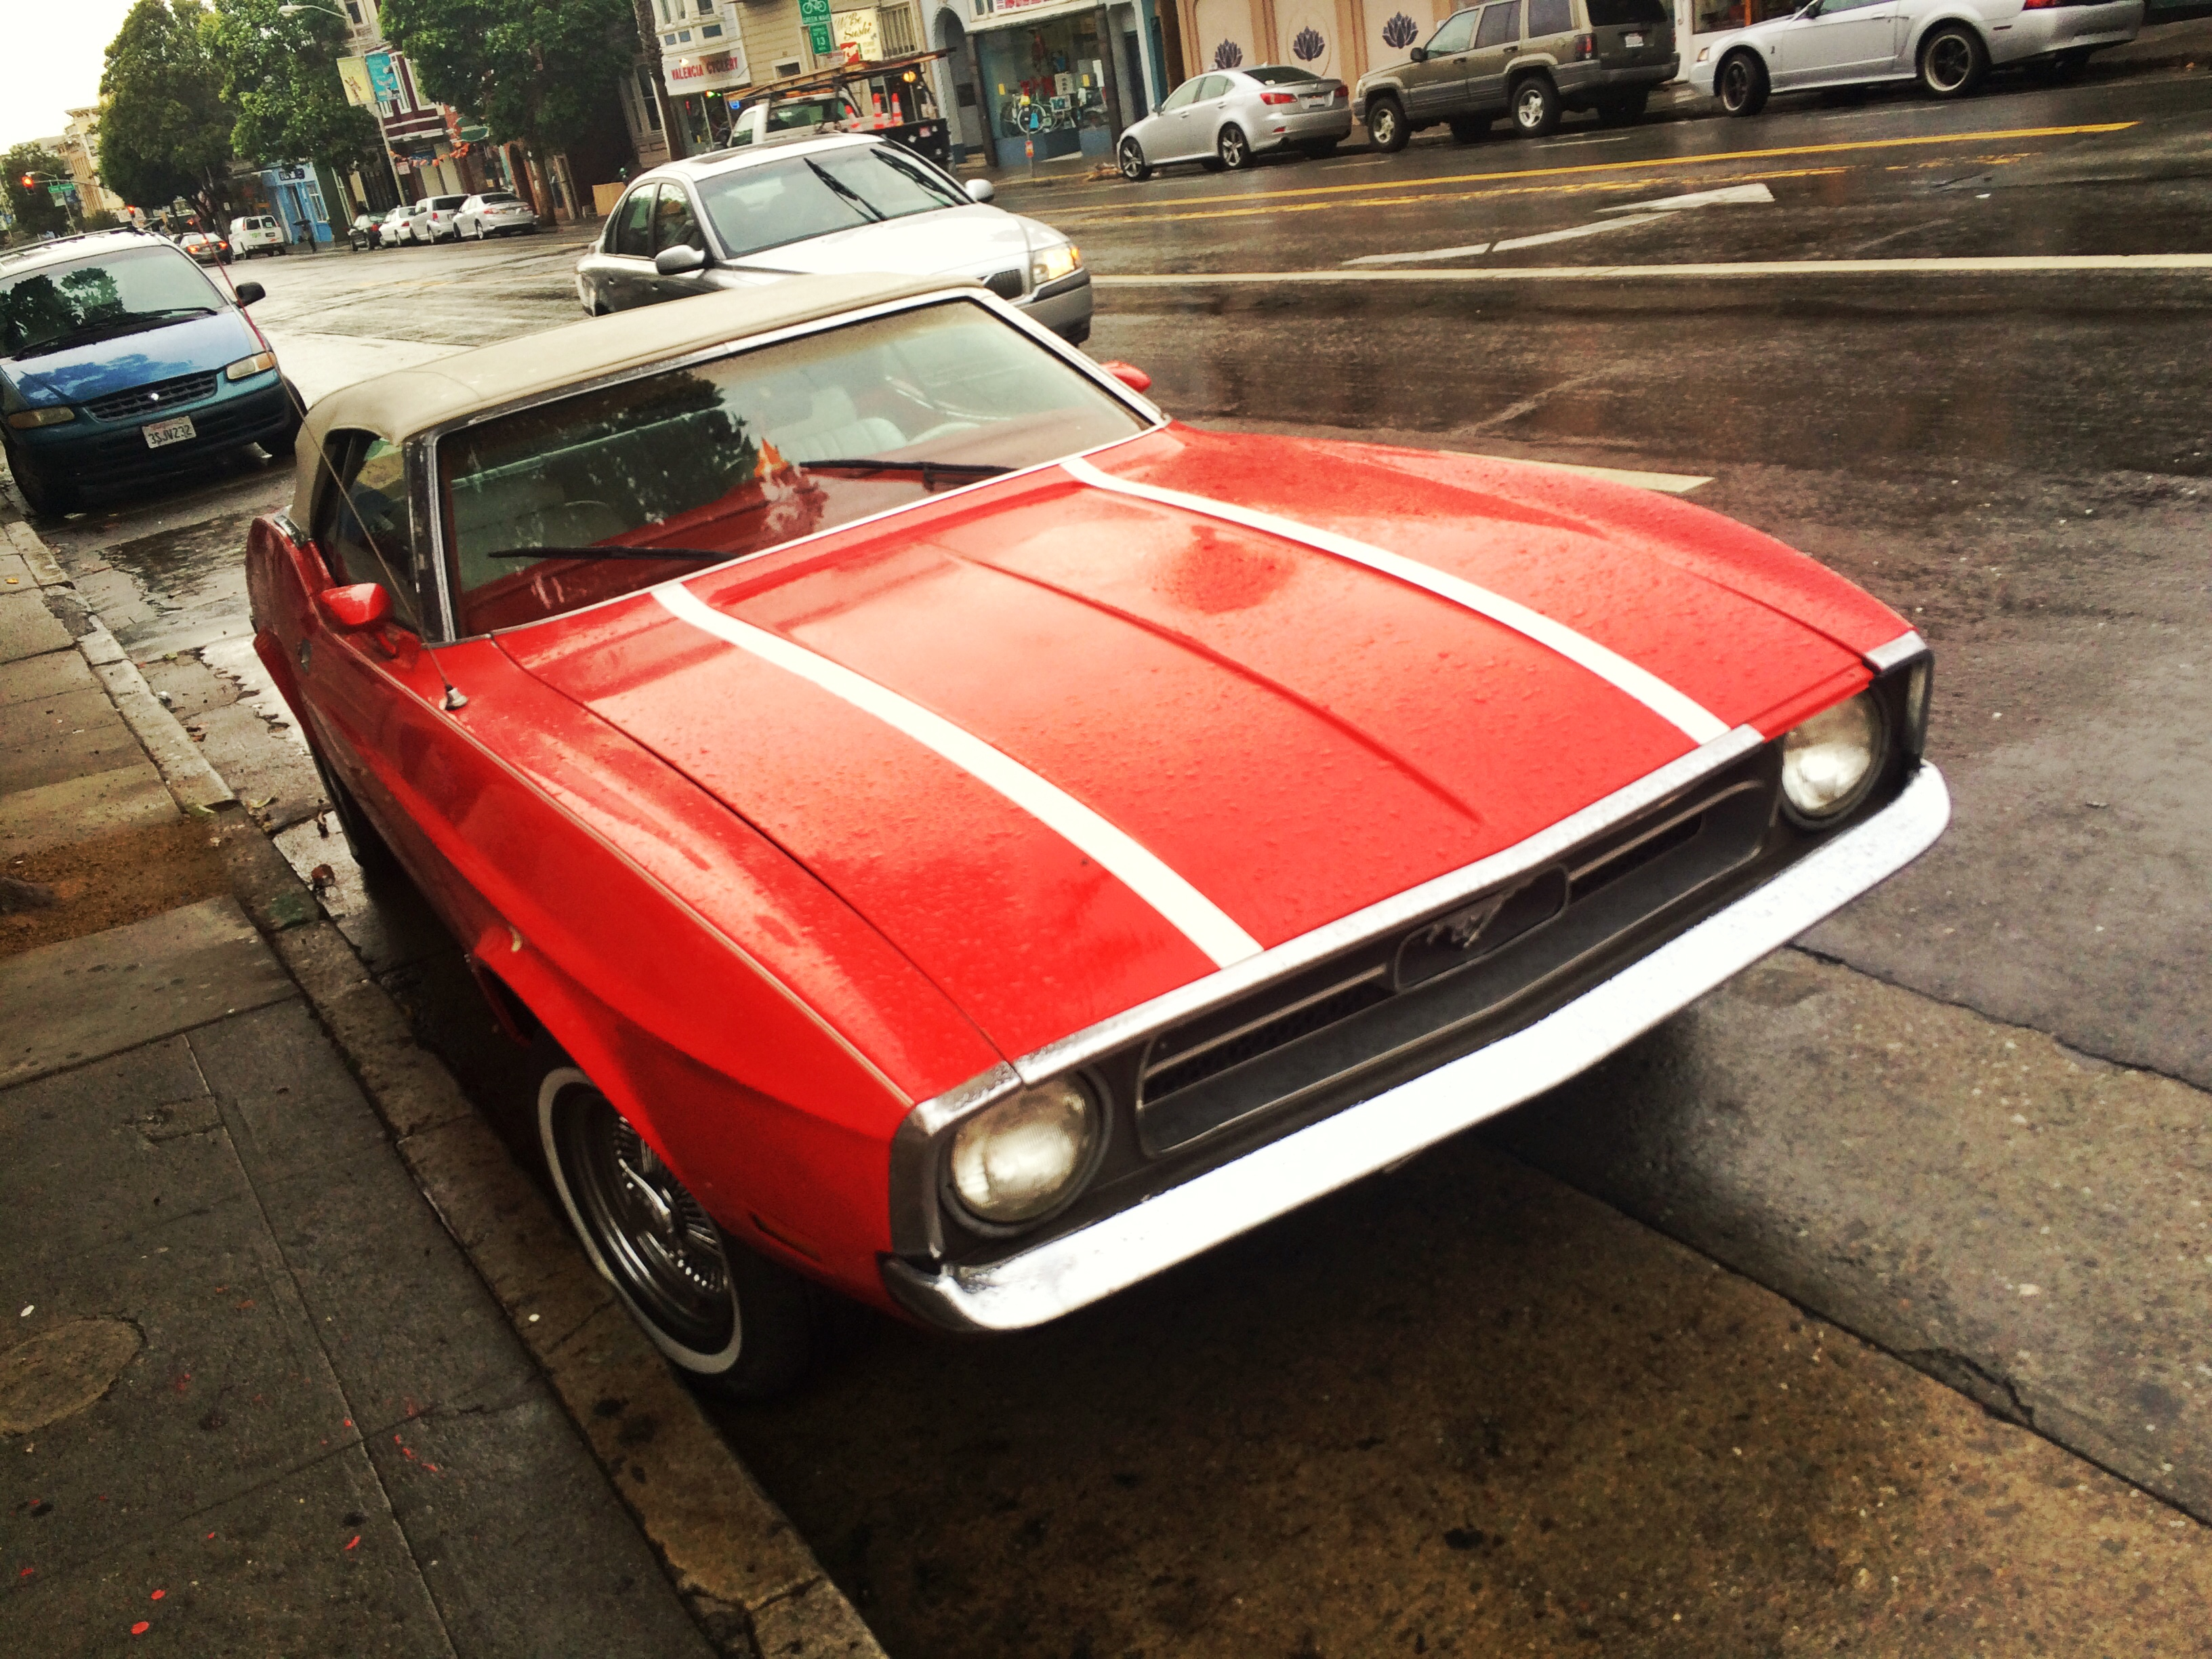 An old Mustang in San Francisco